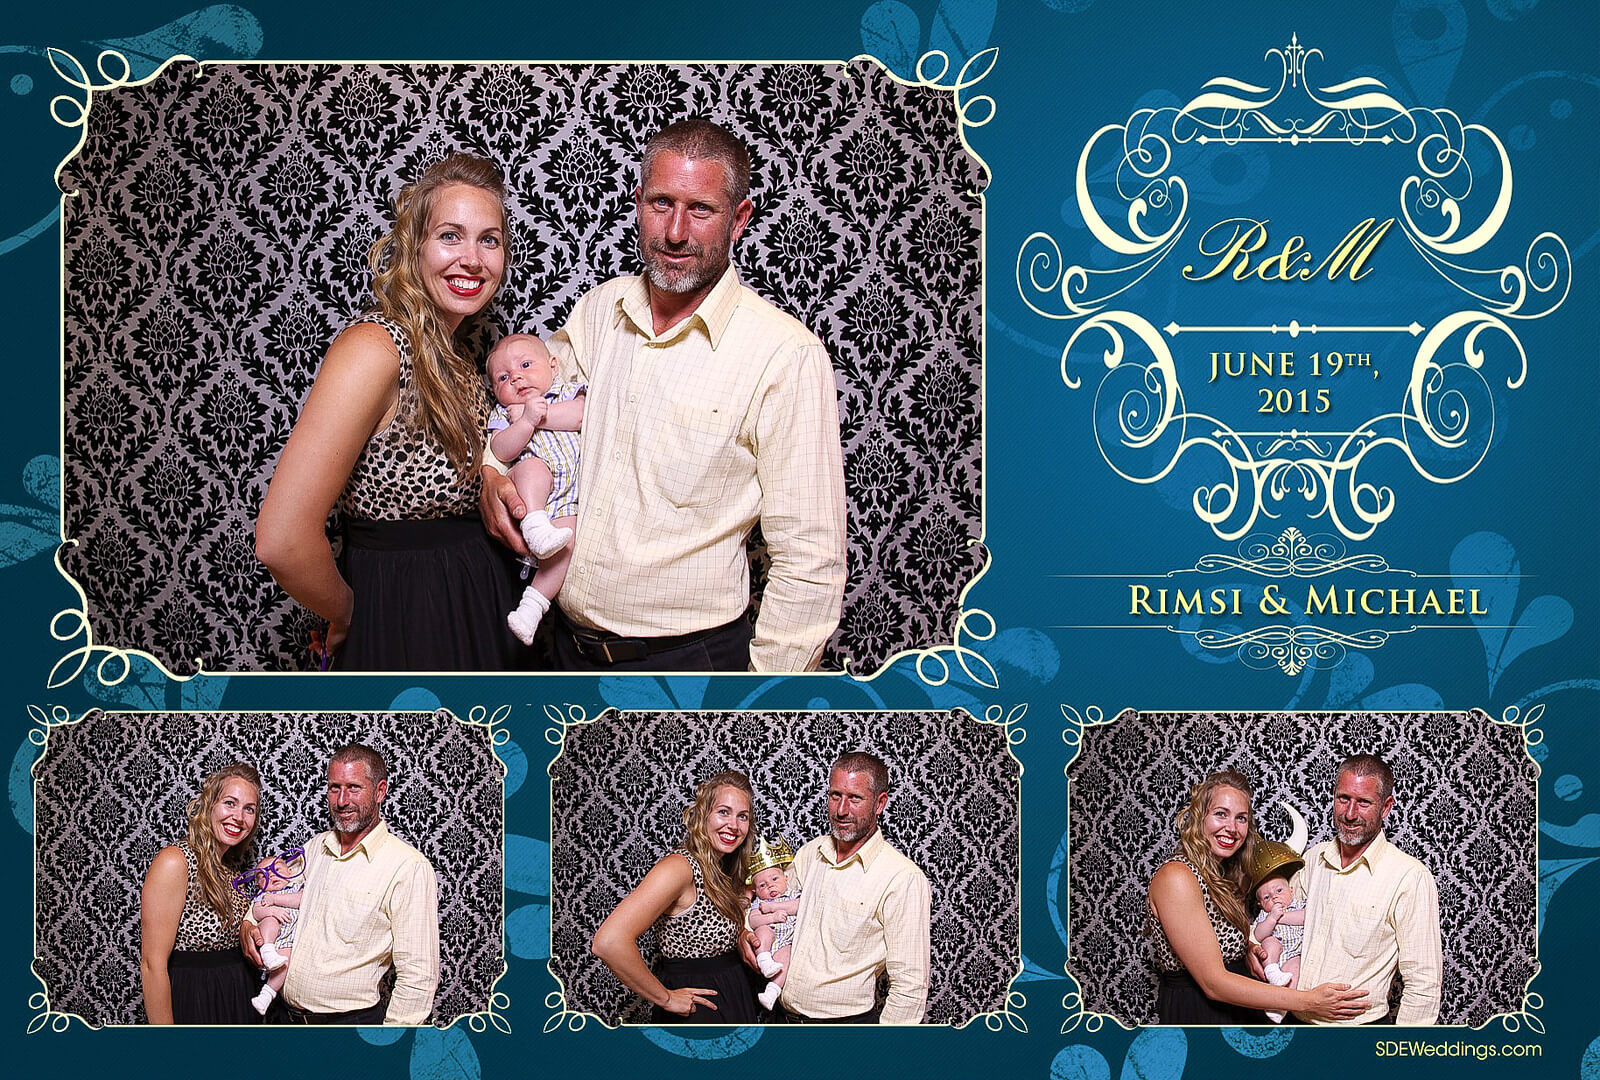 Toronto Italian Borgata Wedding Photo Booth Rental 4